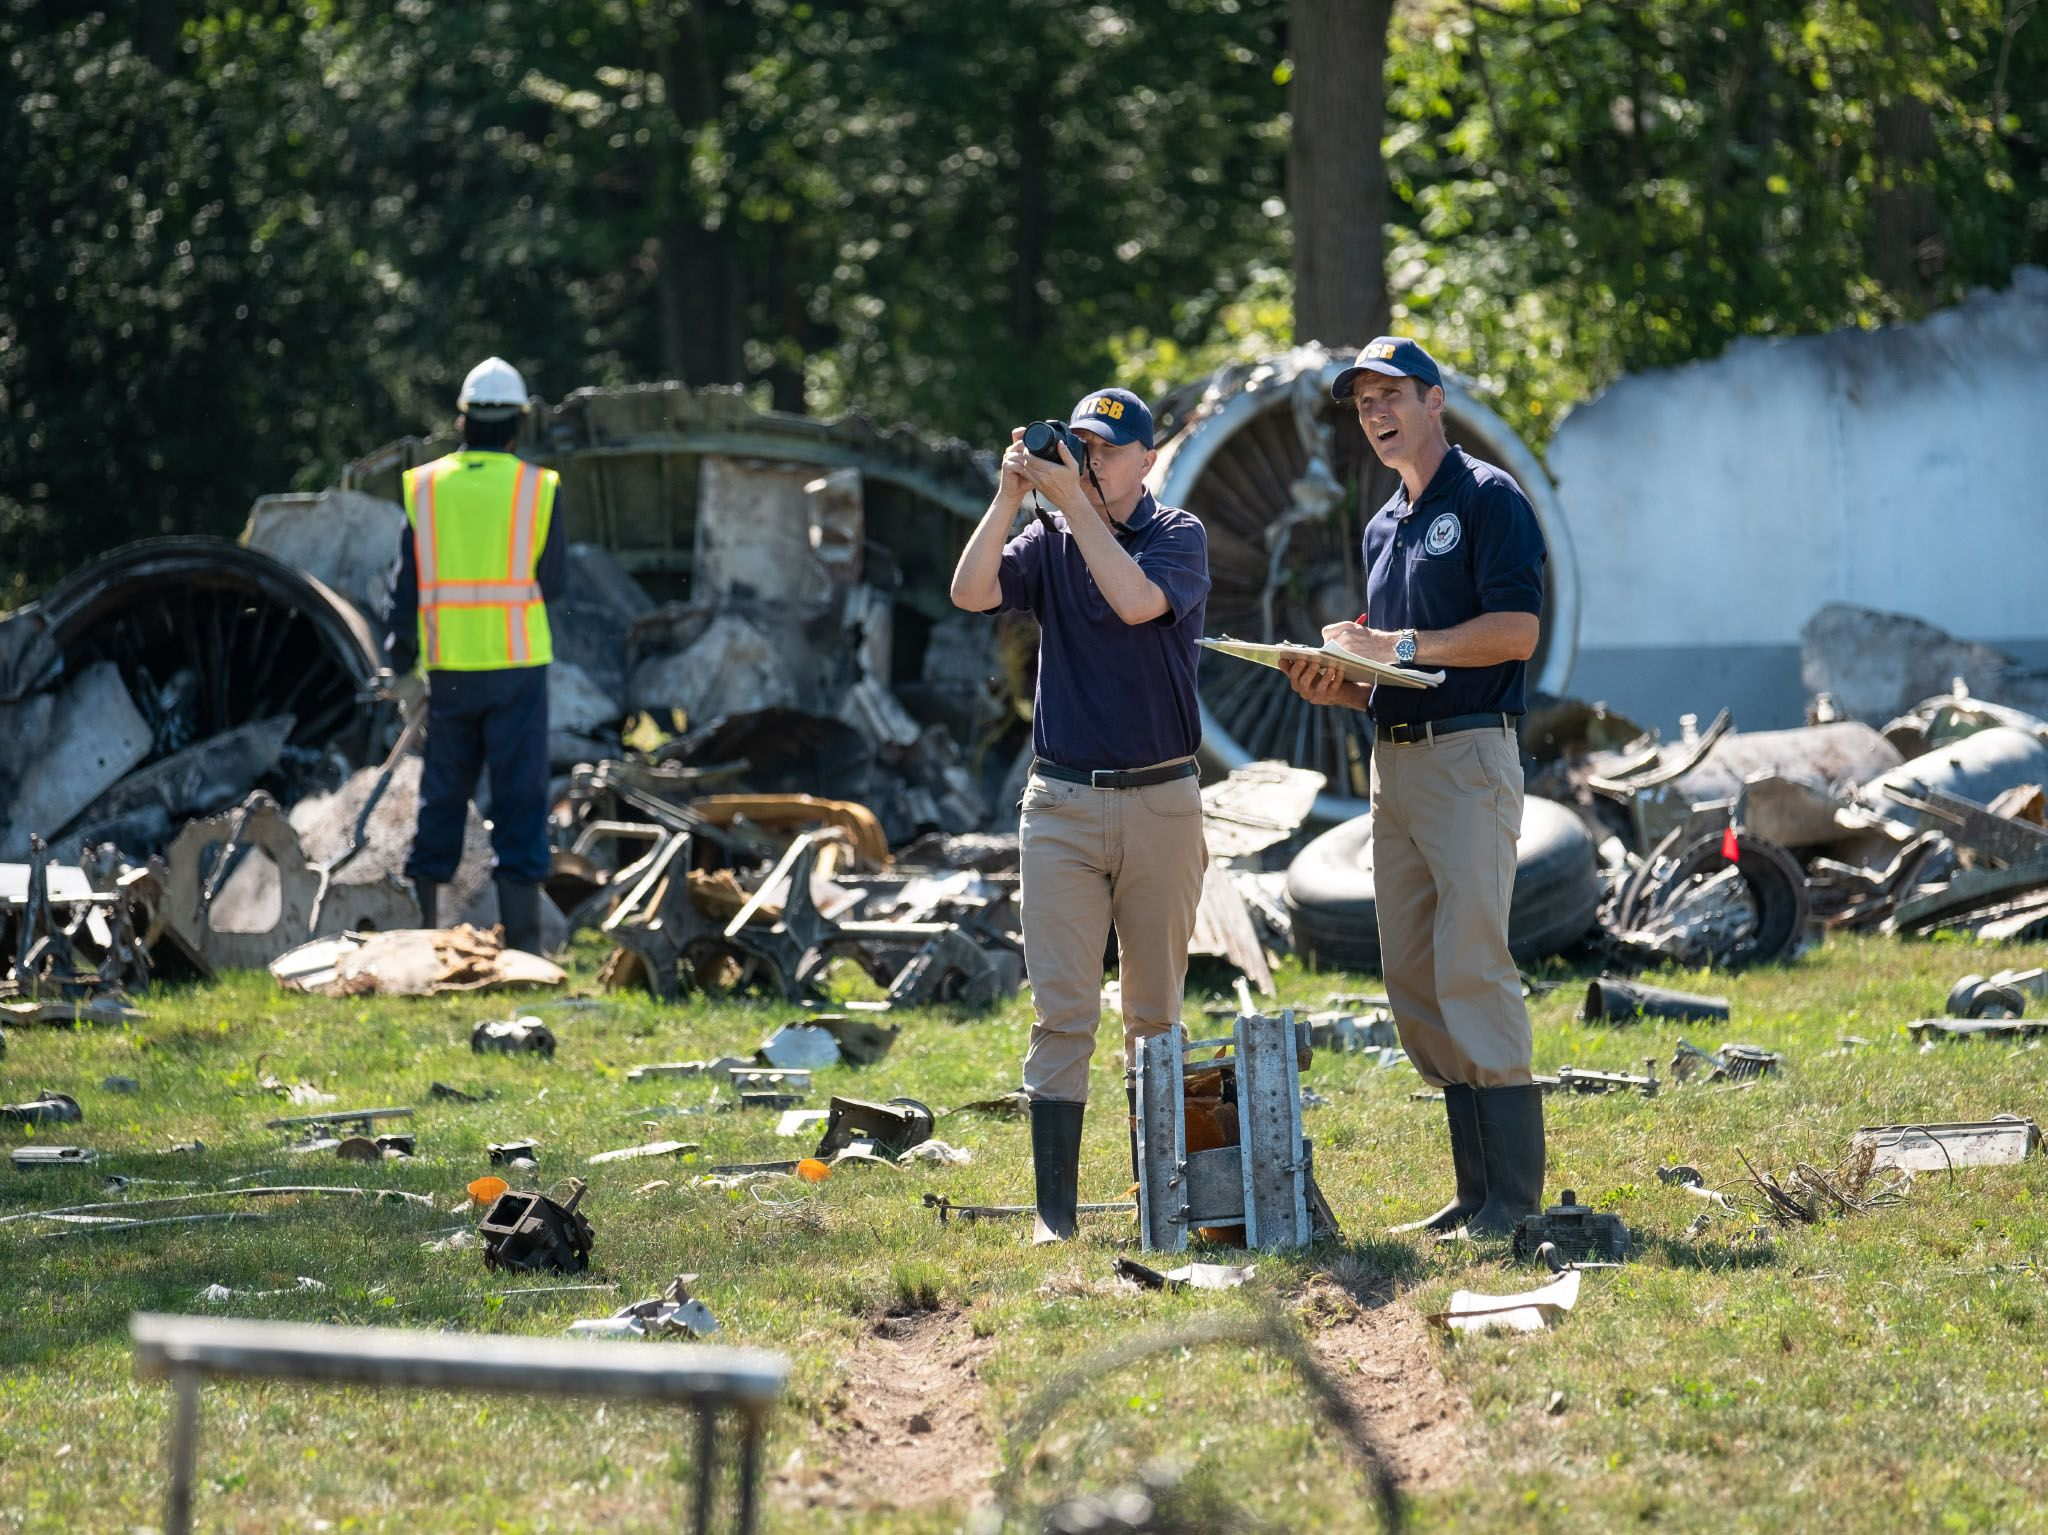 REENACTMENT - NTSB Investigator Joe Sedor (played by Jason Faulkner) reviews his notes, while a... [Photo of the day - April 2021]